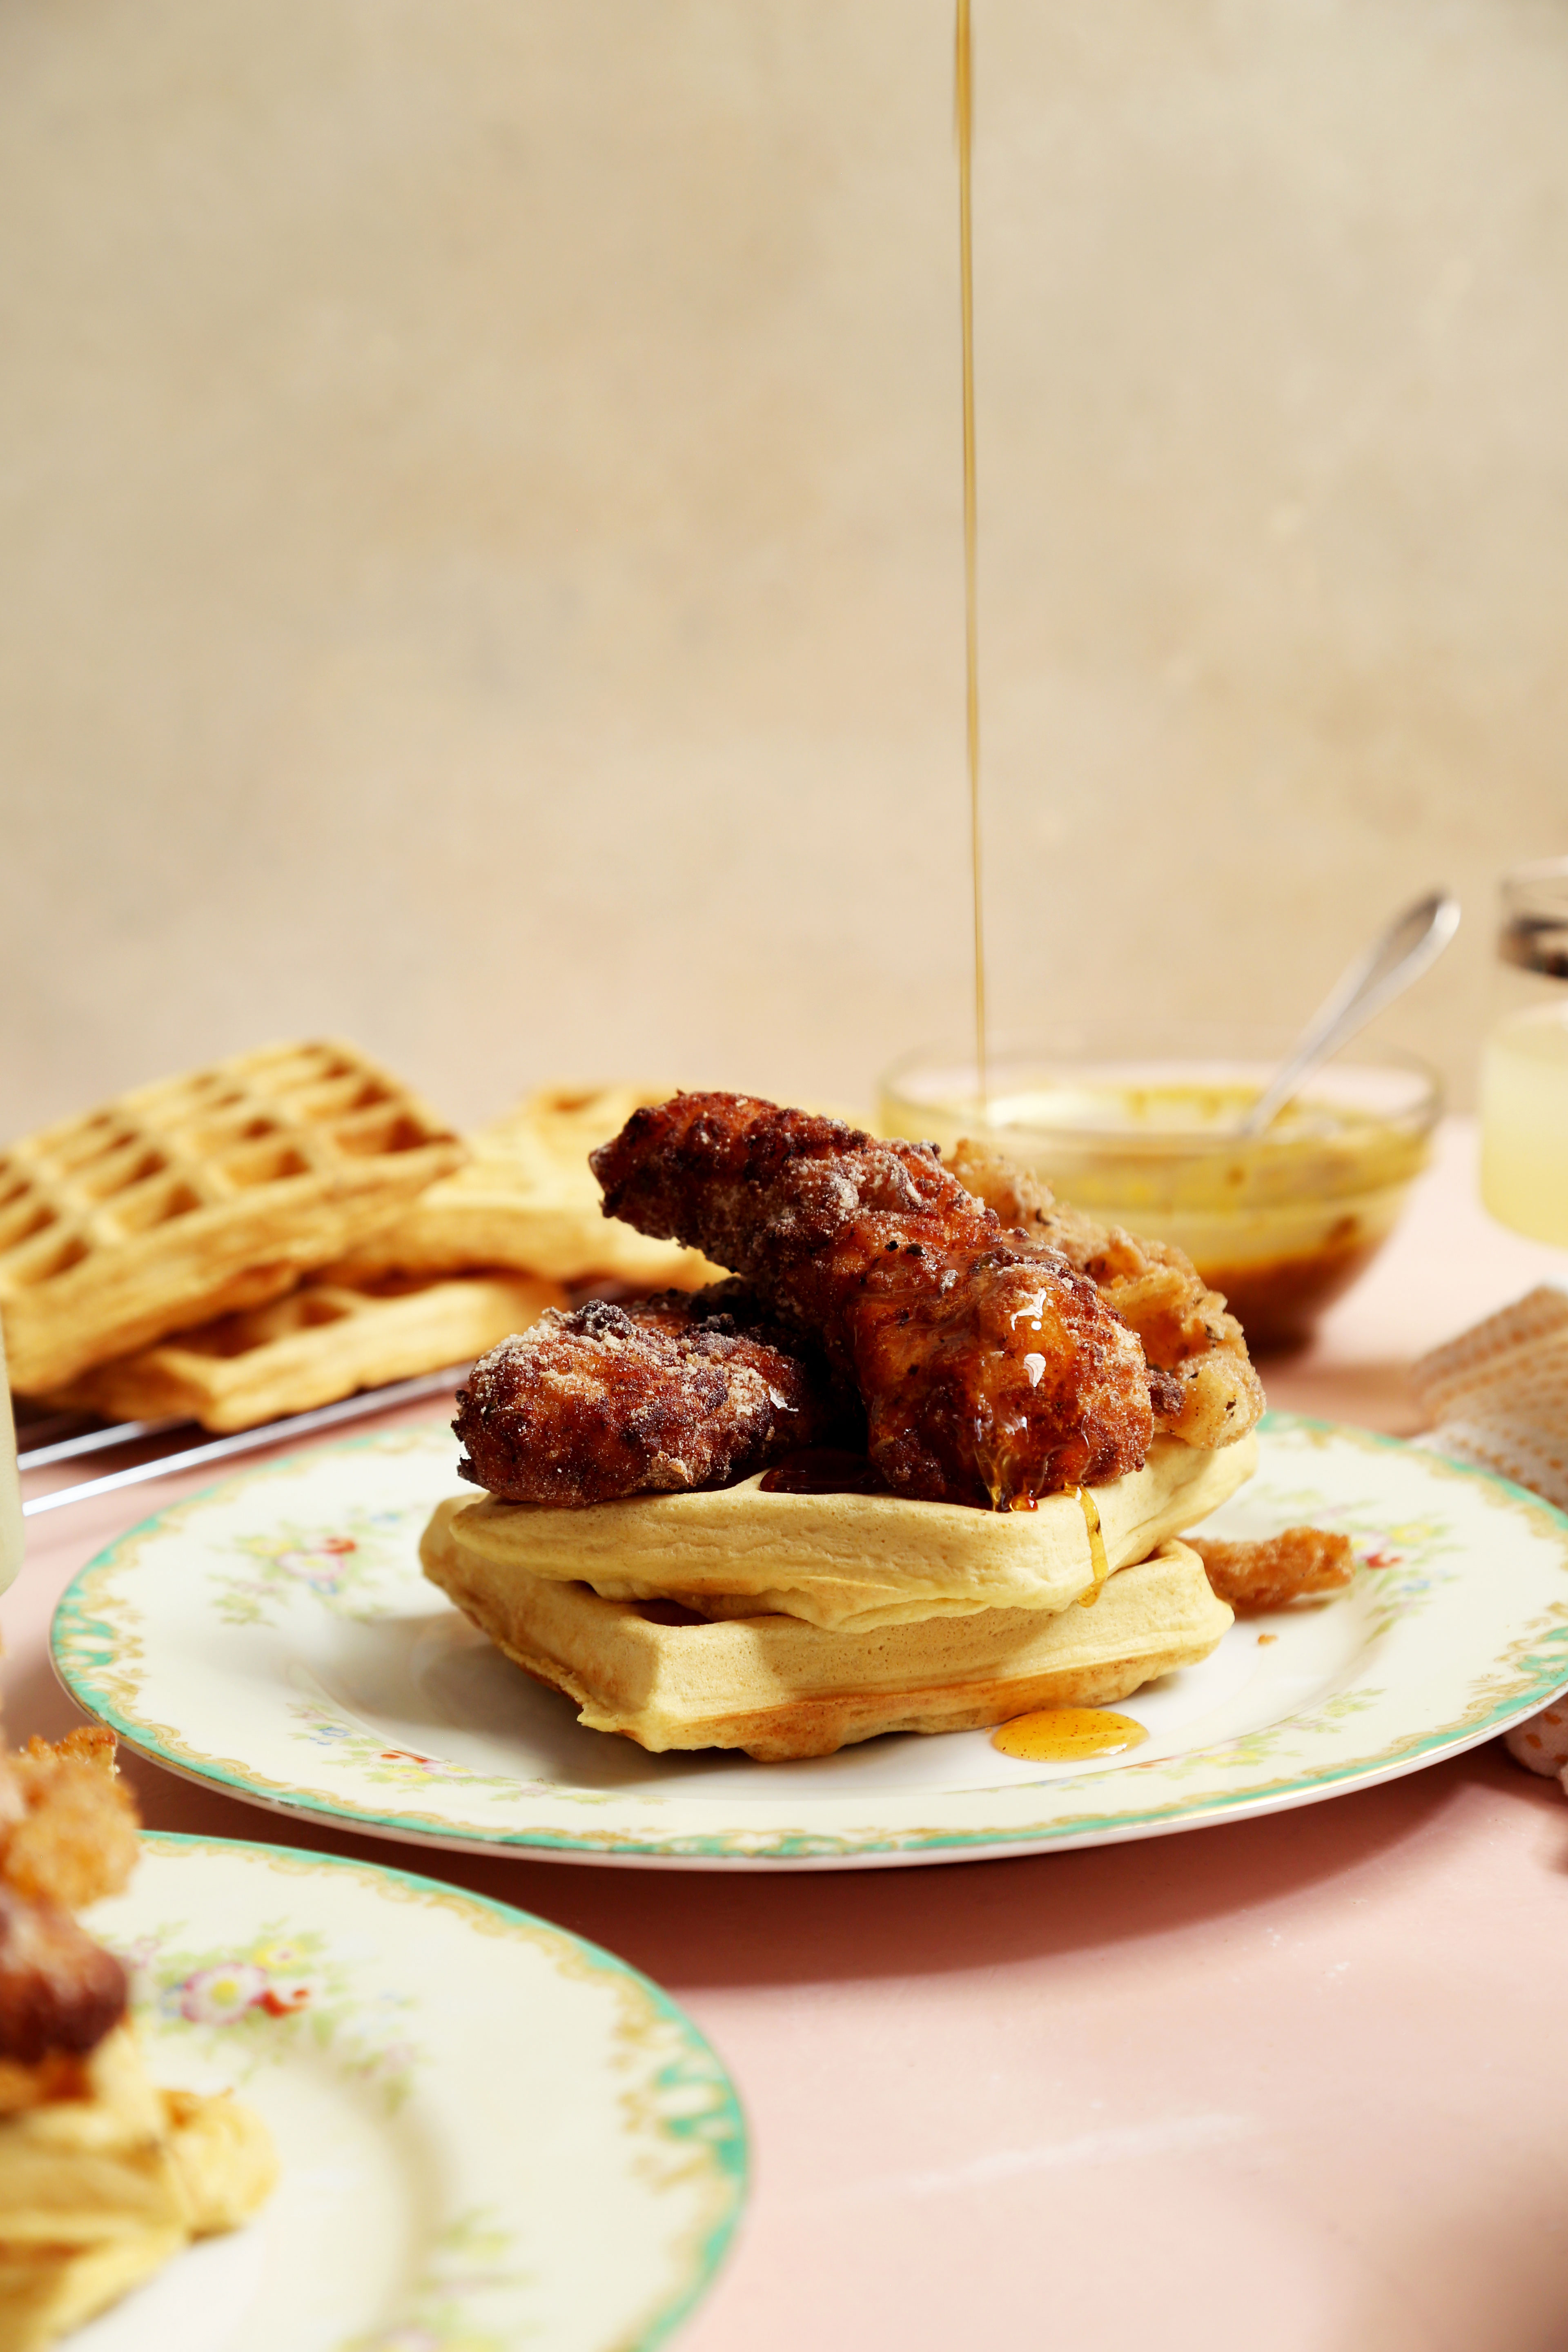 Gluten-Free and Chickpea Chicken and Waffles